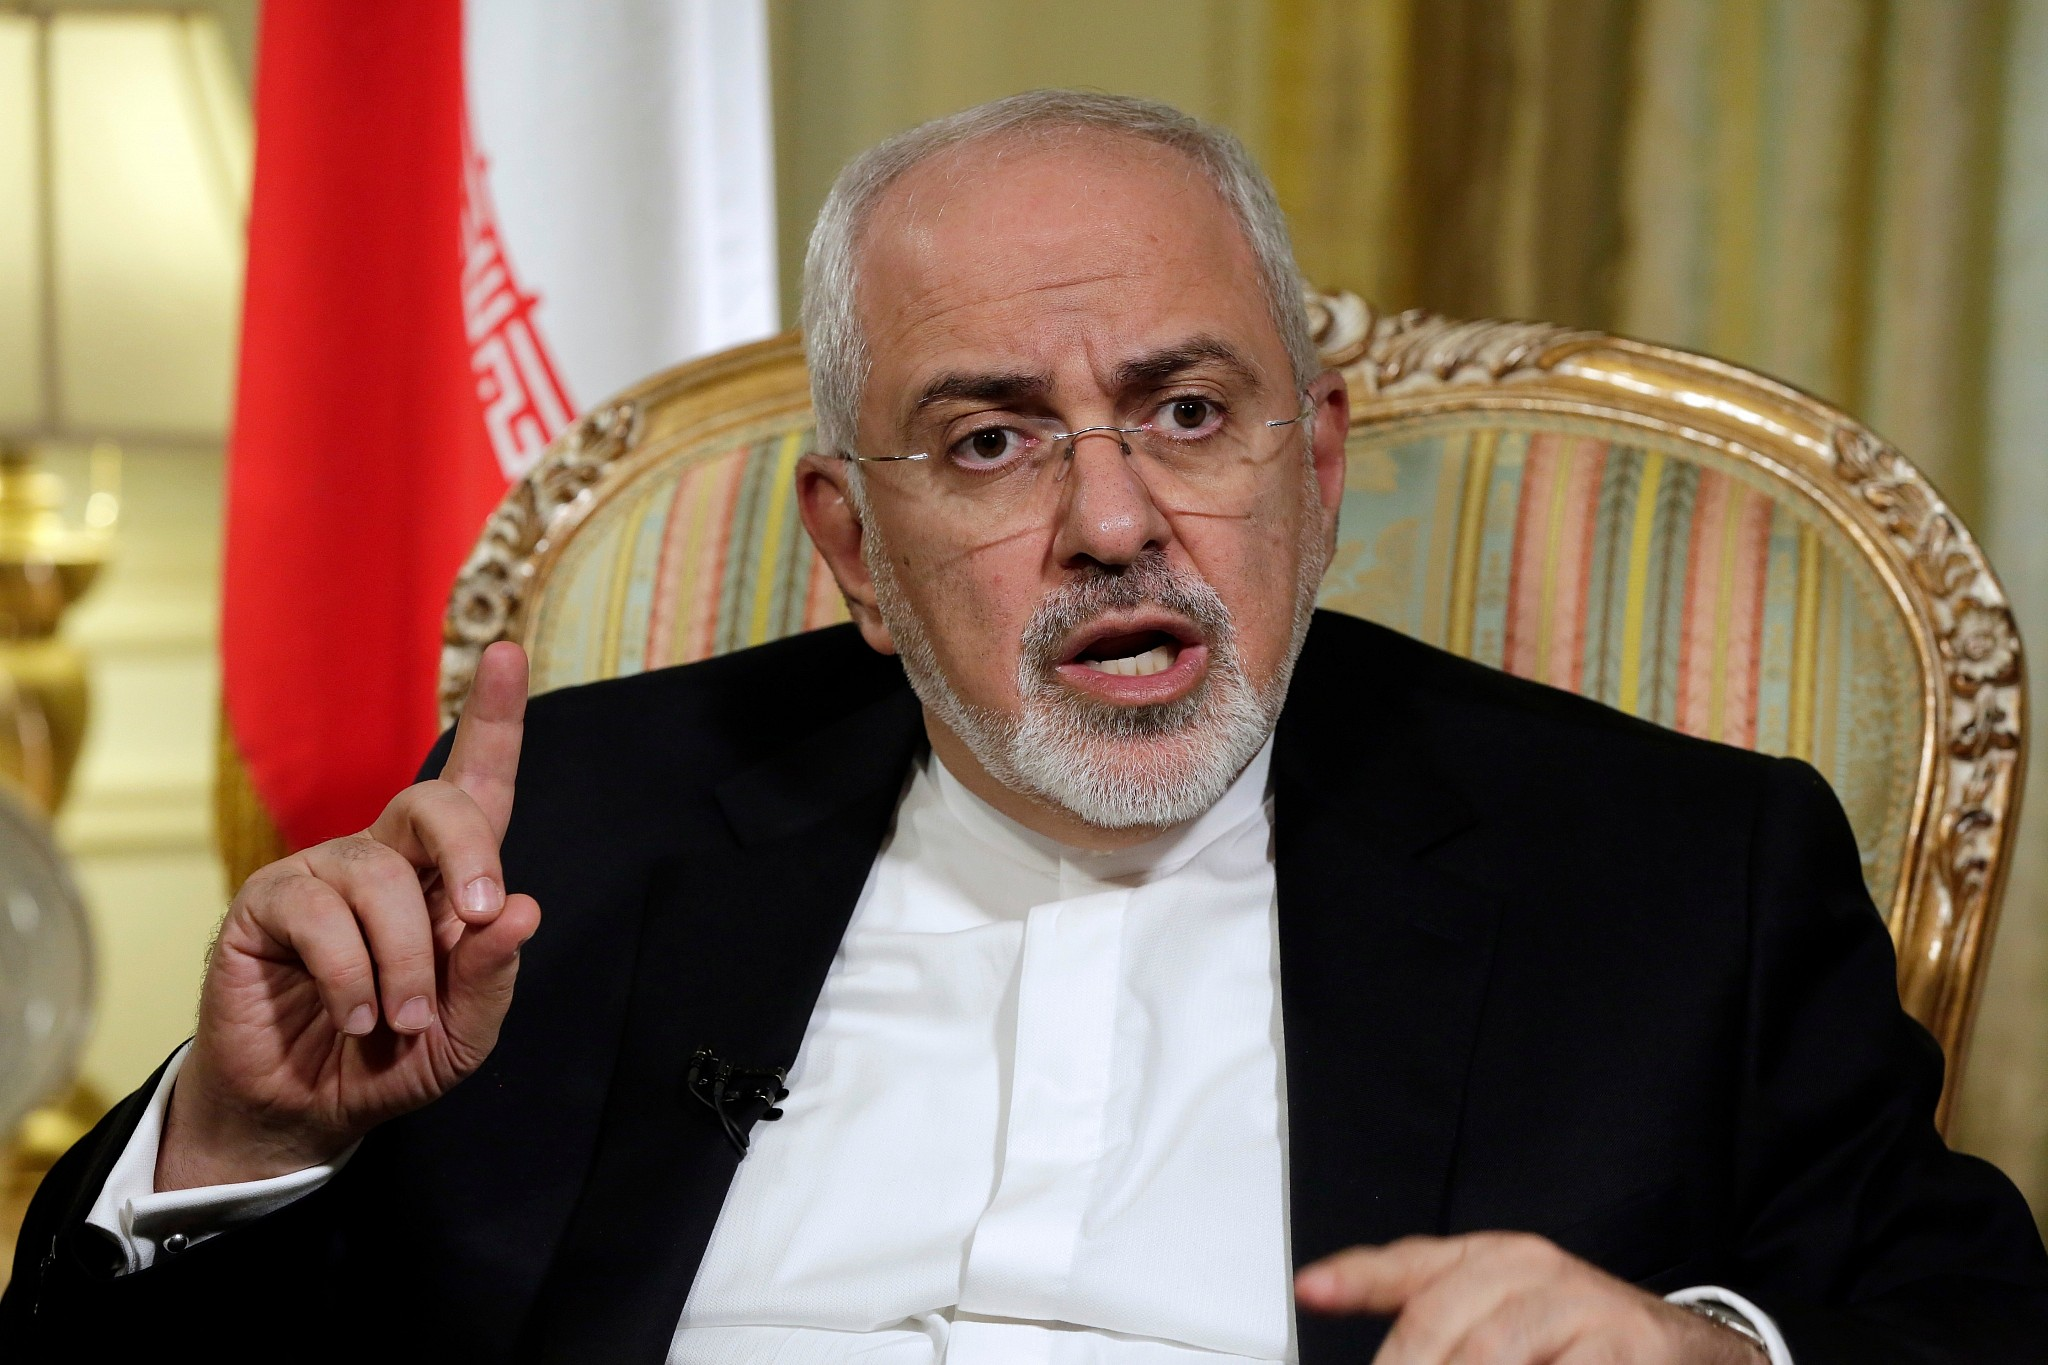 Iran's Foreign Minister Mohammad Javad Zarif is interviewed by The Associated Press in New York